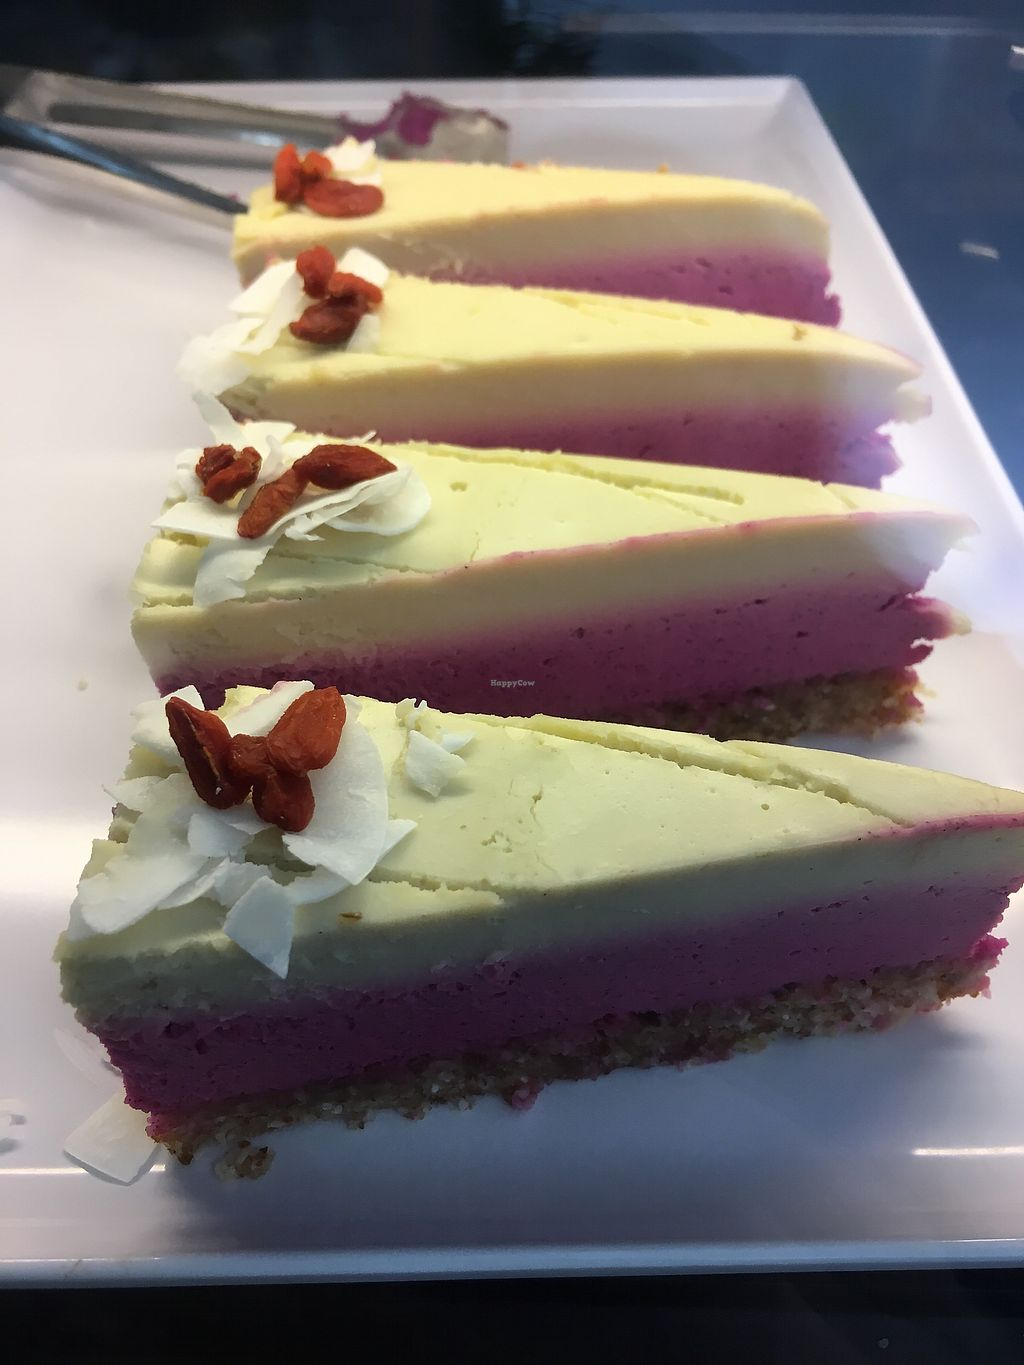 "Photo of Hills Organics  by <a href=""/members/profile/Mslanei"">Mslanei</a> <br/>raspberry ""cheese""cake <br/> July 3, 2017  - <a href='/contact/abuse/image/80820/276489'>Report</a>"